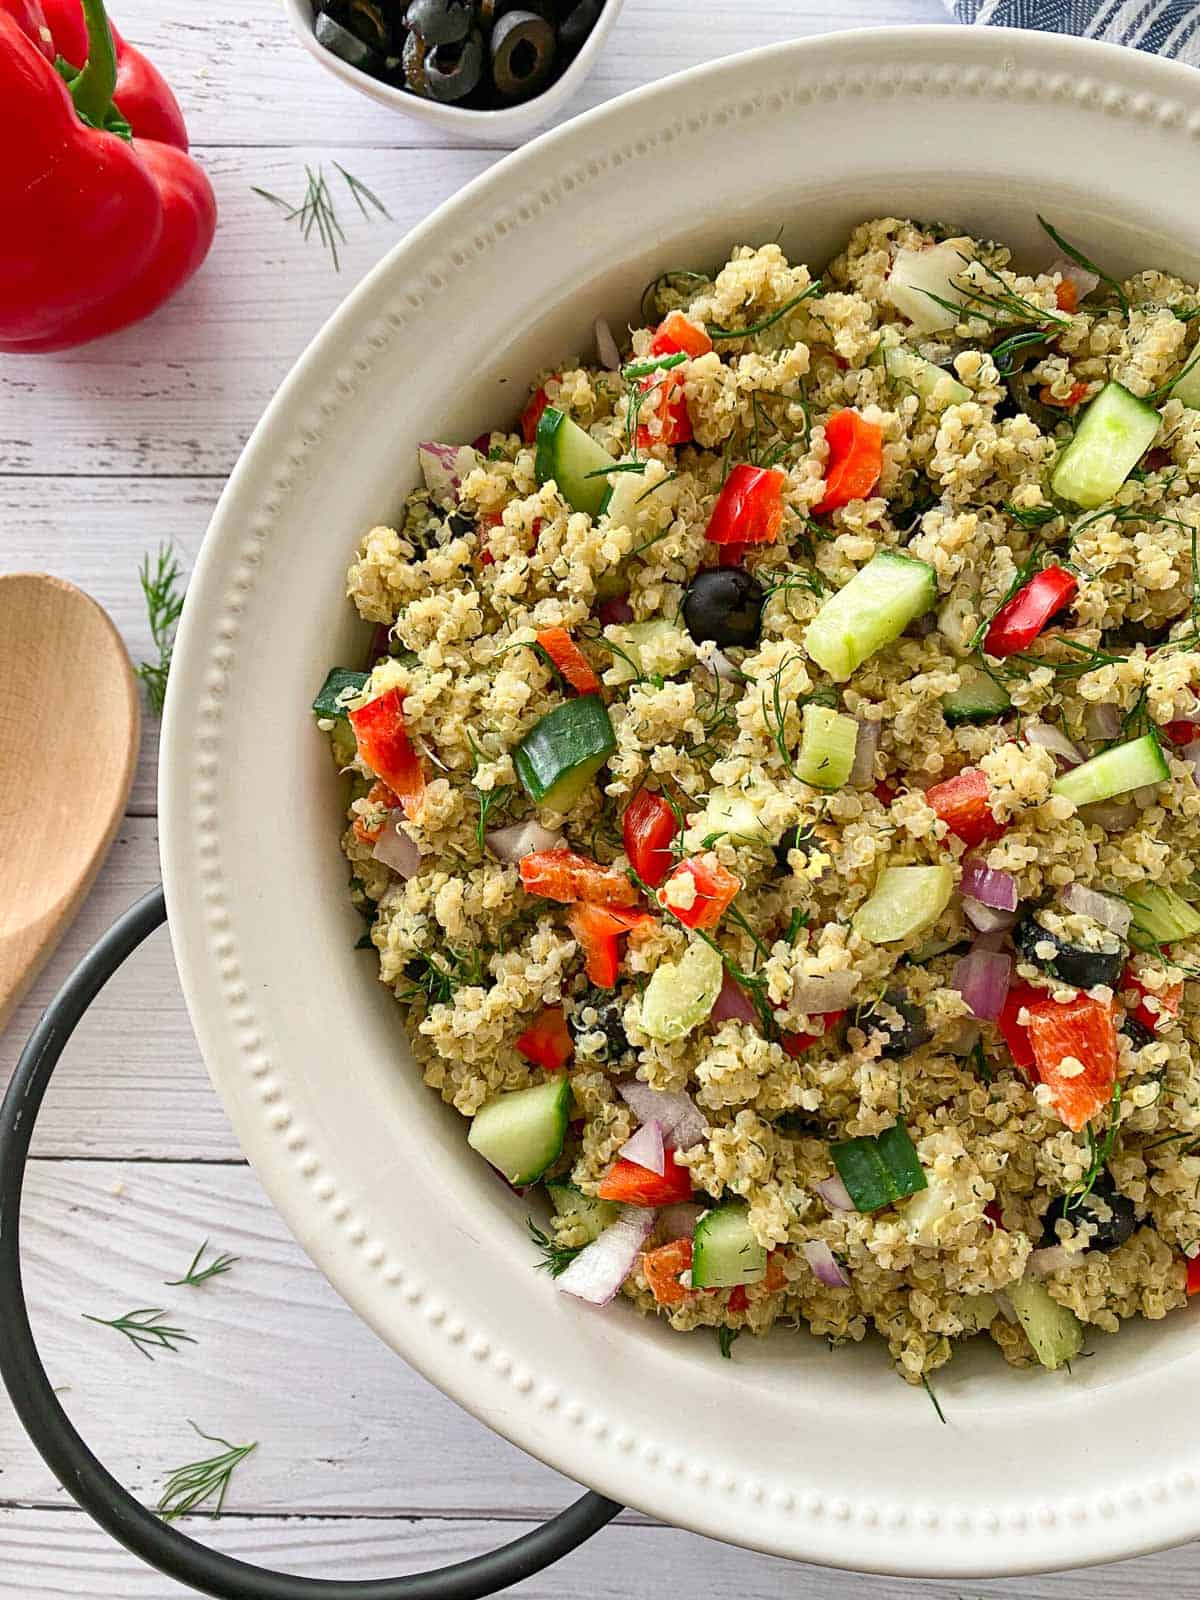 Quinoa pasta salad in large white serving dish with wooden spoon on the side.